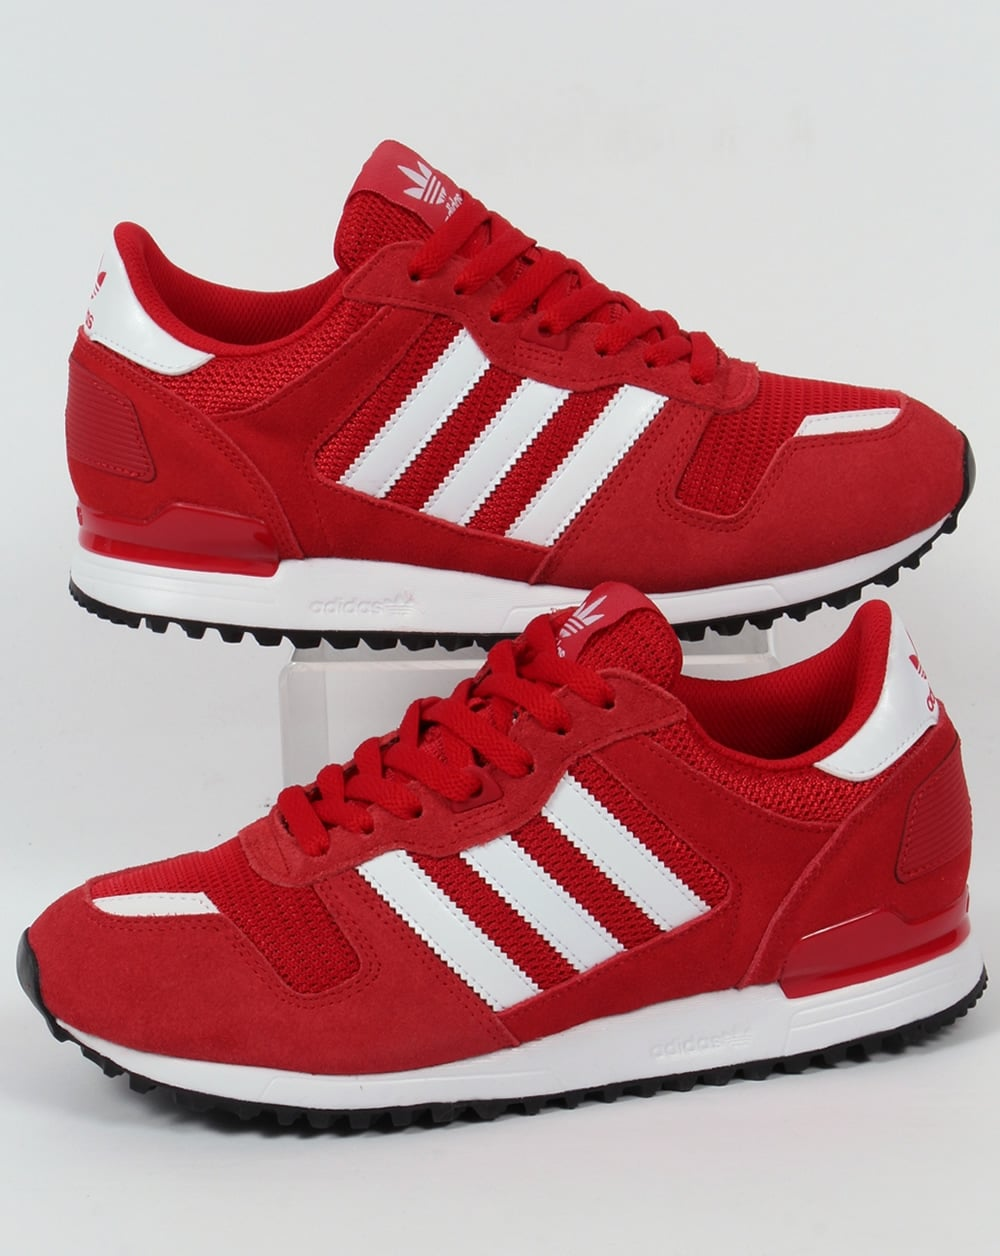 new arrival c0408 8cc96 adidas Trainers Adidas ZX 700 Trainers Red White